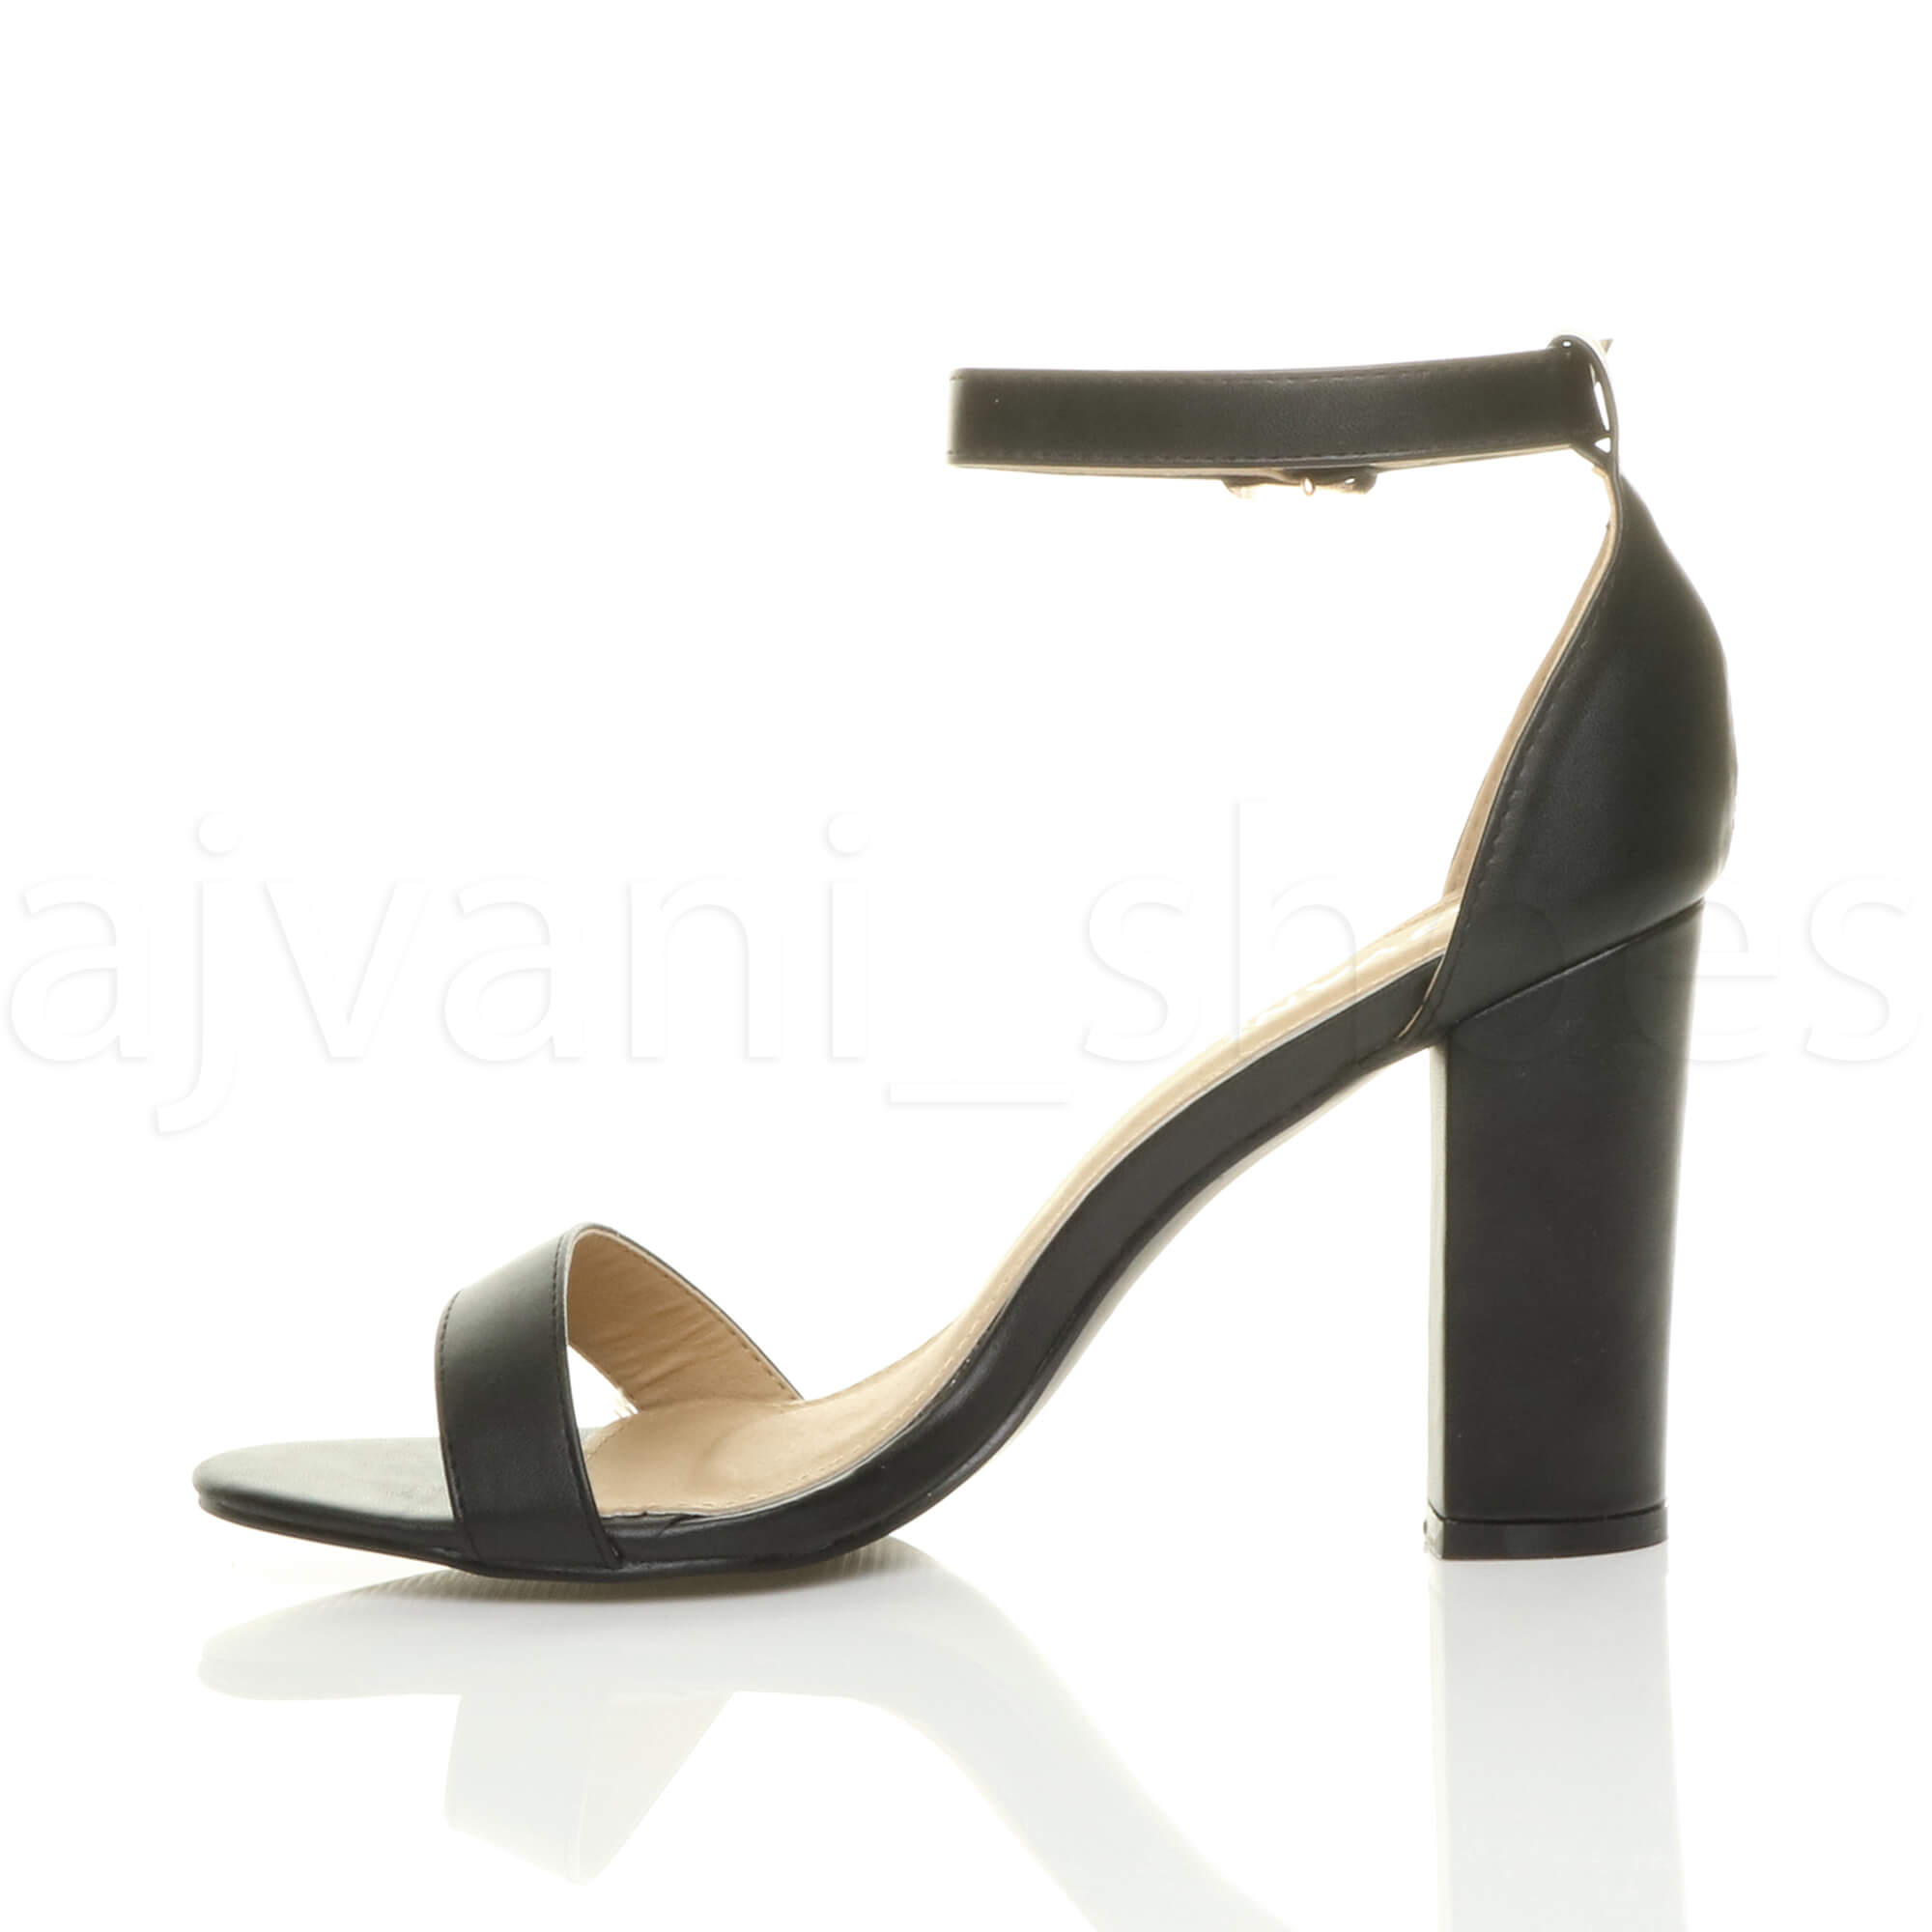 WOMENS-LADIES-BLOCK-HIGH-HEEL-ANKLE-STRAP-PEEP-TOE-STRAPPY-SANDALS-SHOES-SIZE thumbnail 18